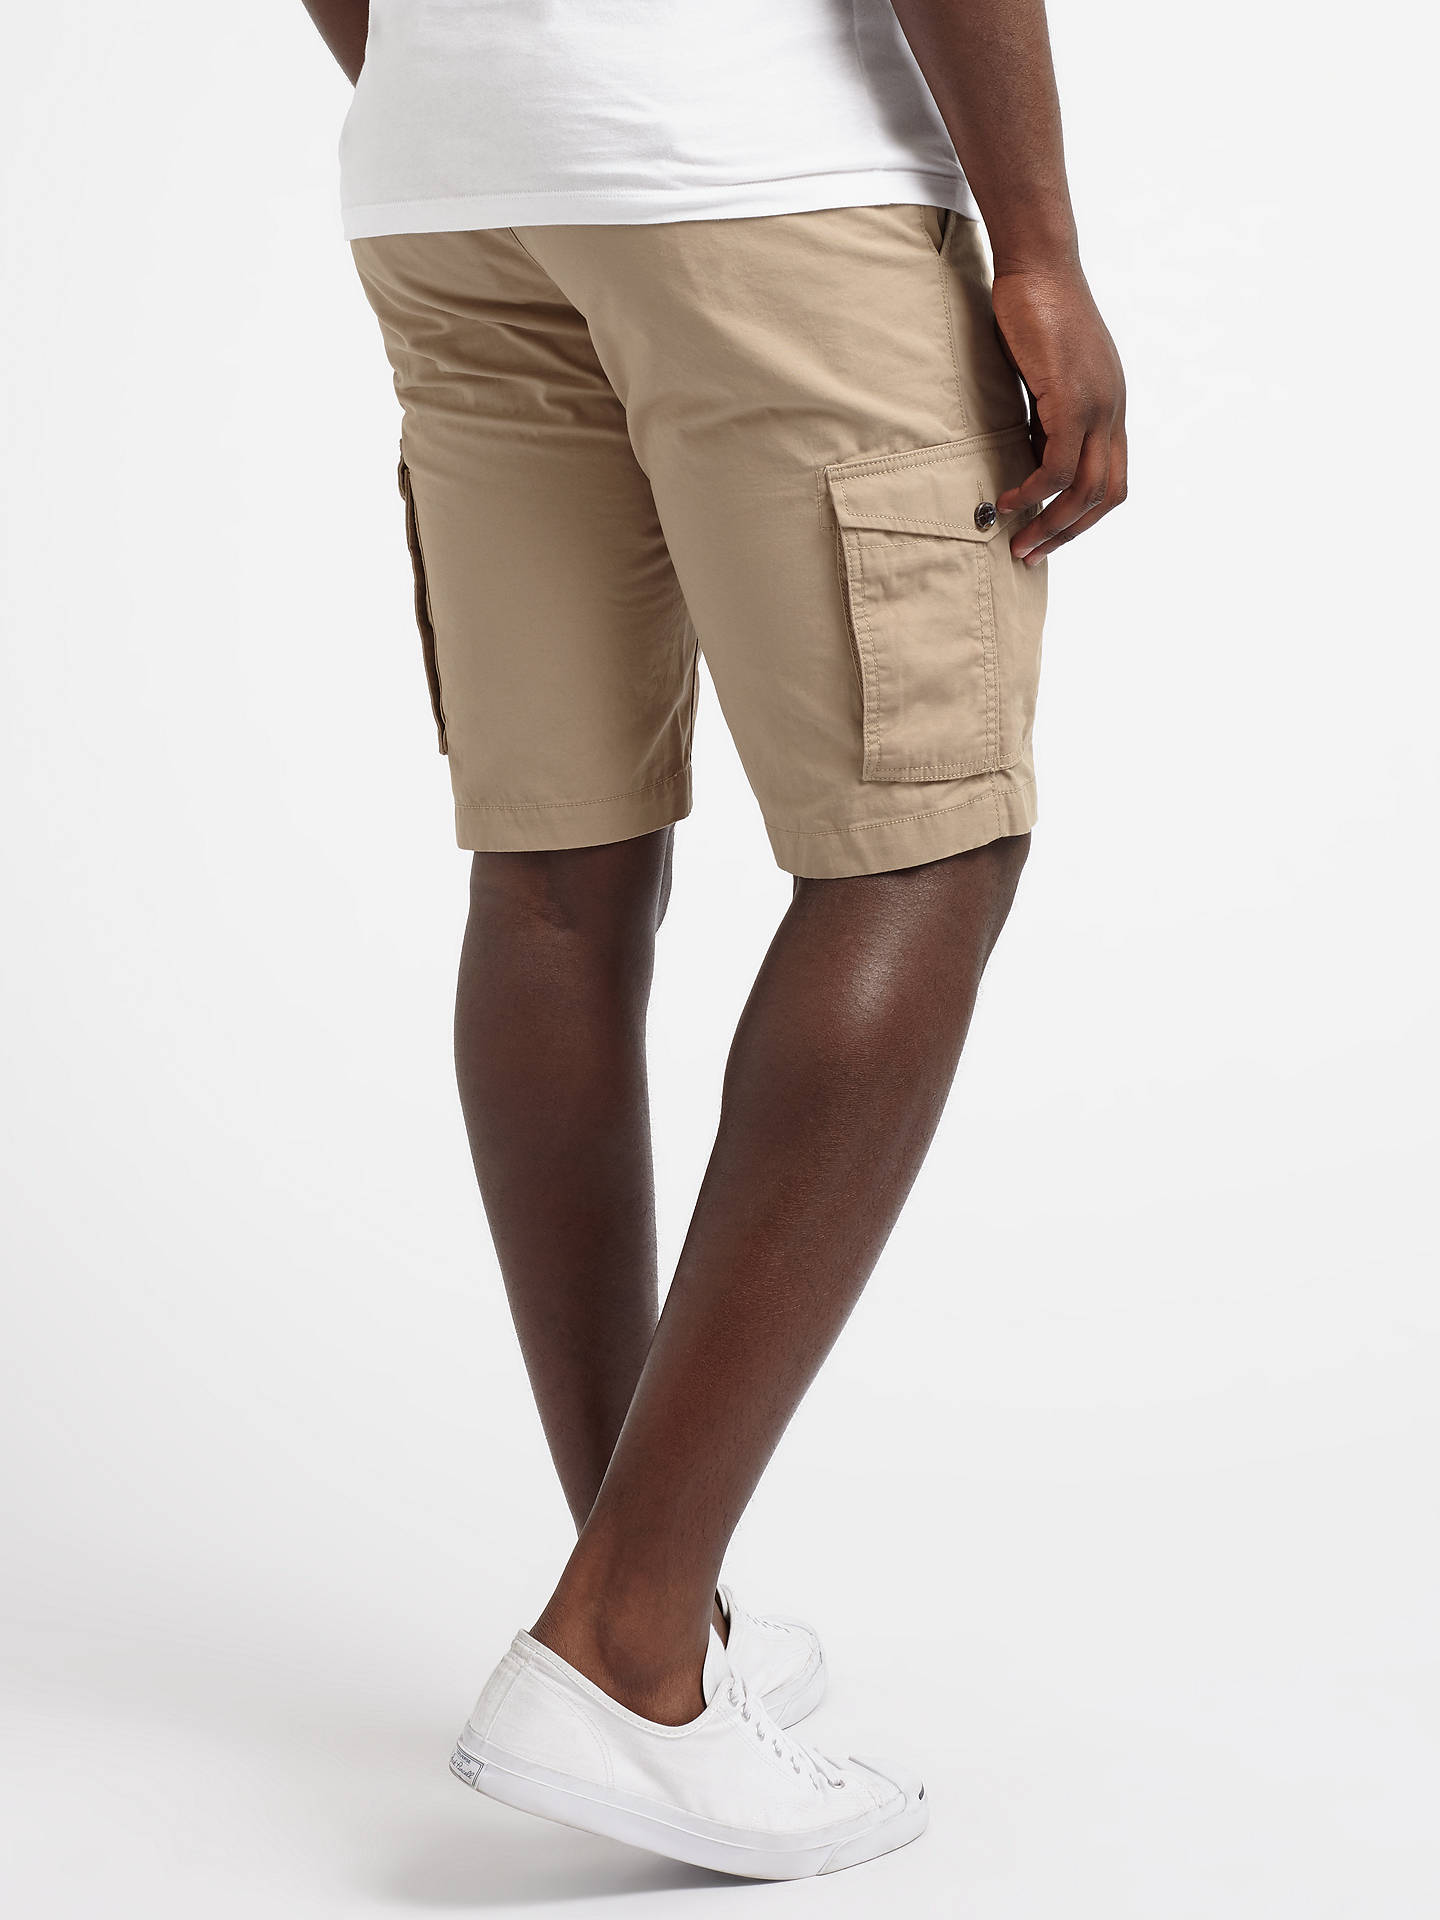 a03150a0 ... Buy Tommy Hilfiger John Sort Light Twill Cargo Shorts, Batique Khaki,  30R Online at ...